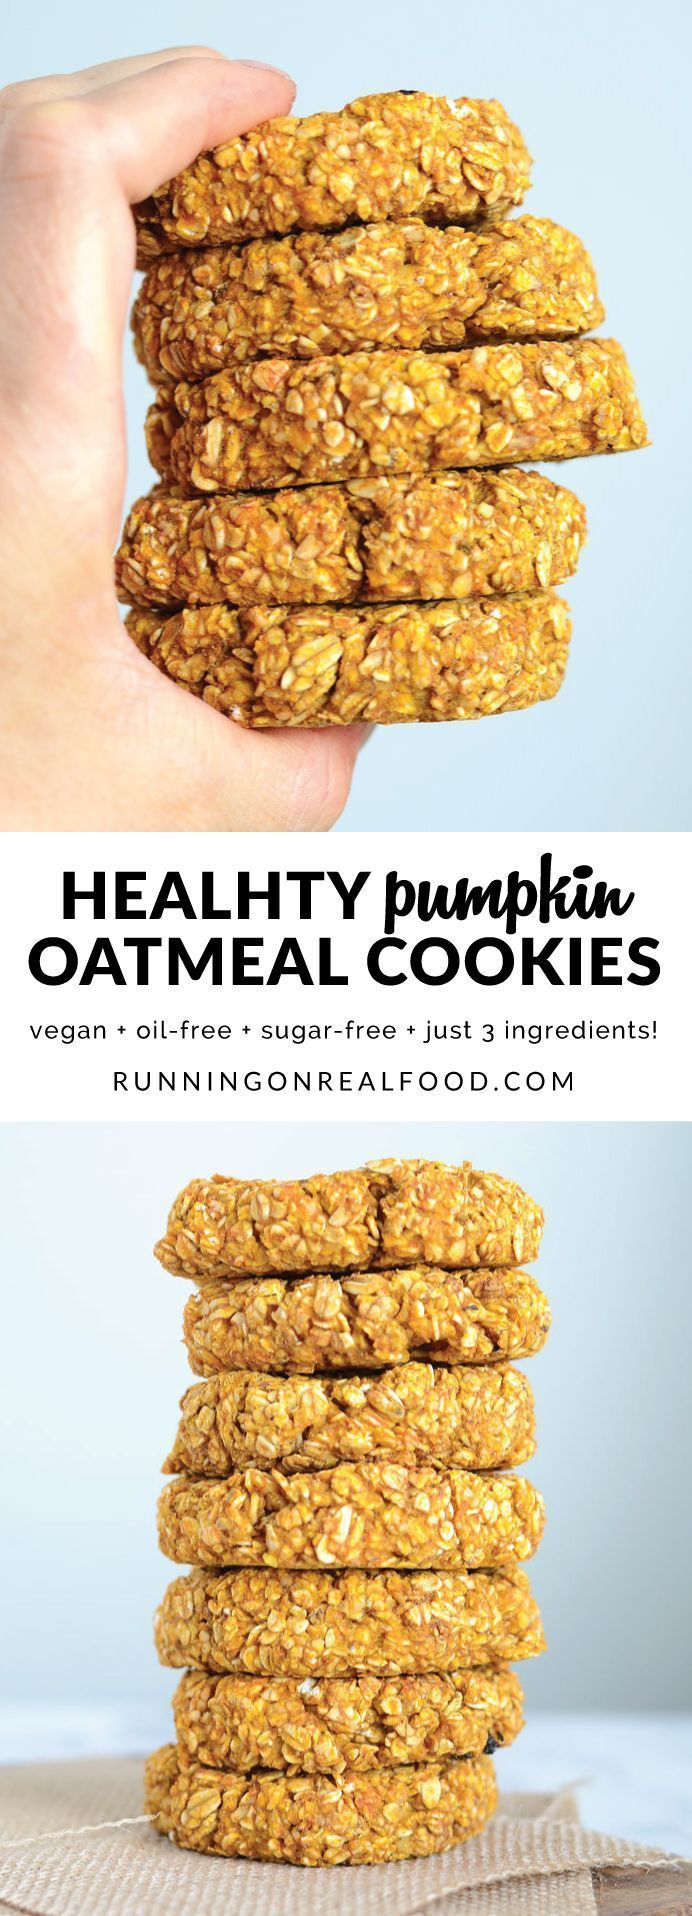 You only need 3 simple ingredients to make these extra hearty, healthy, wholesome and satisfying pumpkin oat cookies. They're ideal before or after a workout for a natural energy boost. Try adding in pumpkin pie spice, walnuts, chocolate chips, raisins or coconut to take them up a notch!  #pumpkincookies #healthycookie #pumpkin